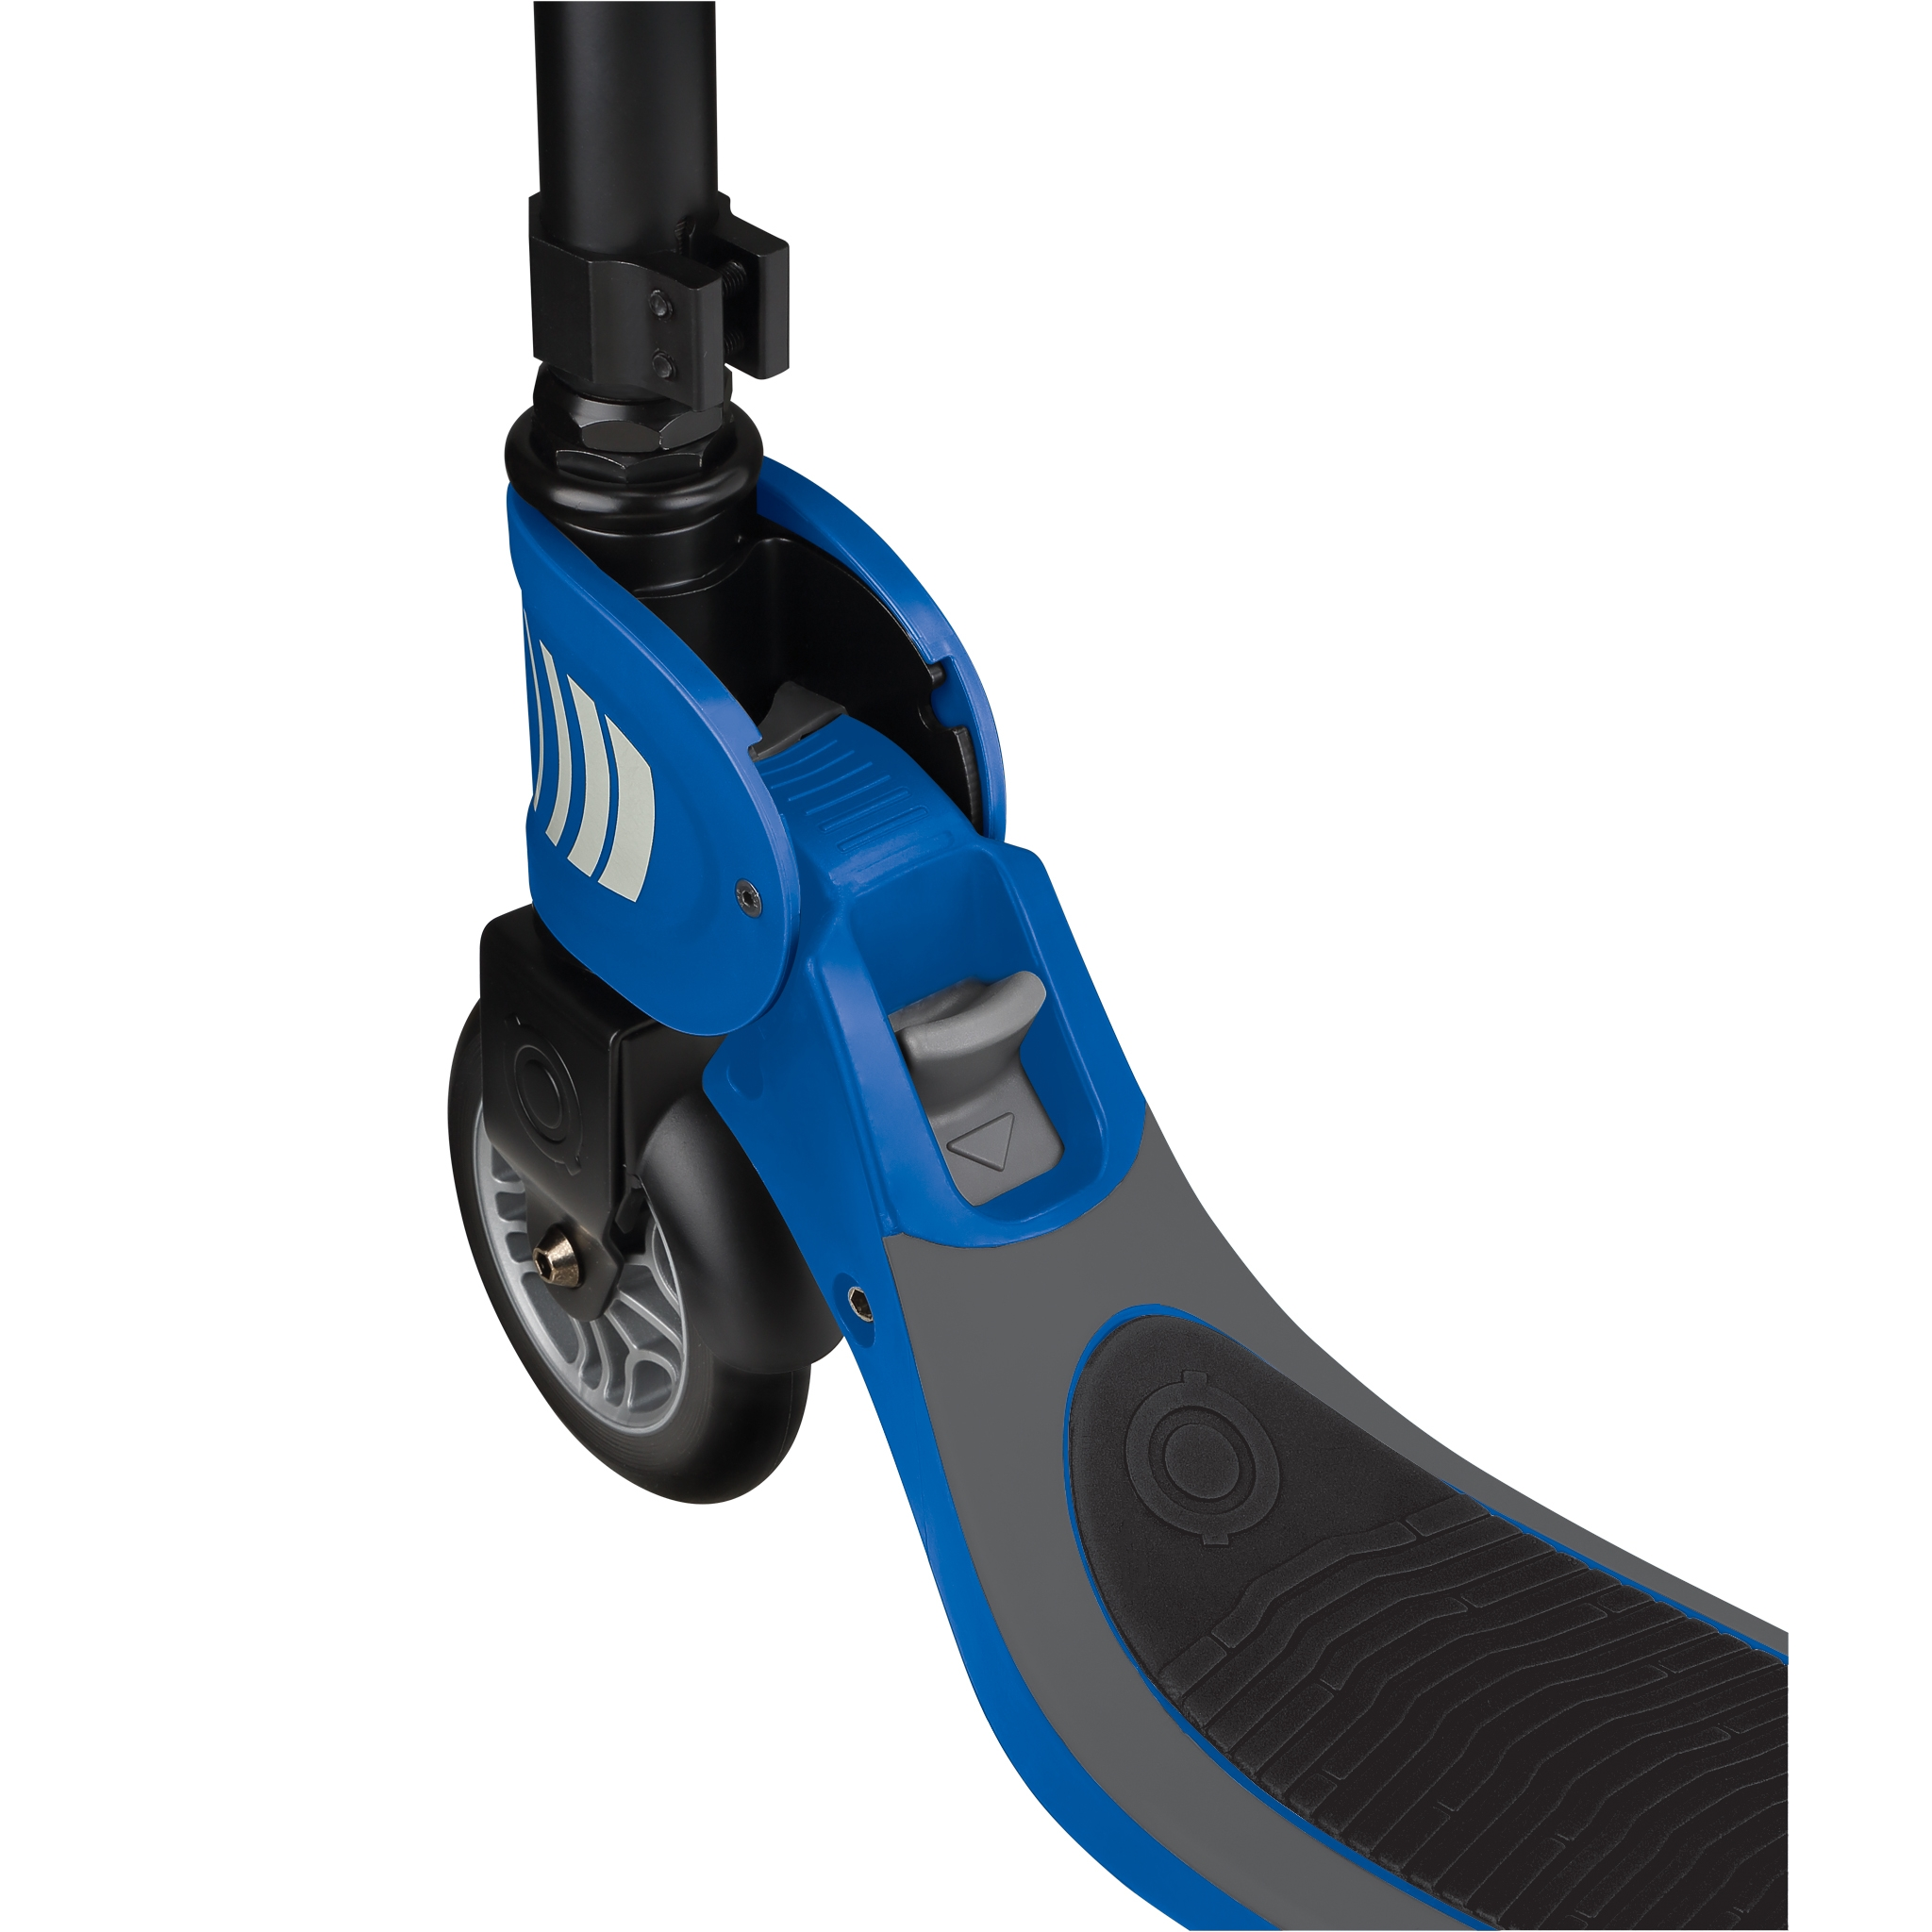 FLOW-FOLDABLE-125-2-wheel-folding-scooter-with-push-button-navy-blue 4